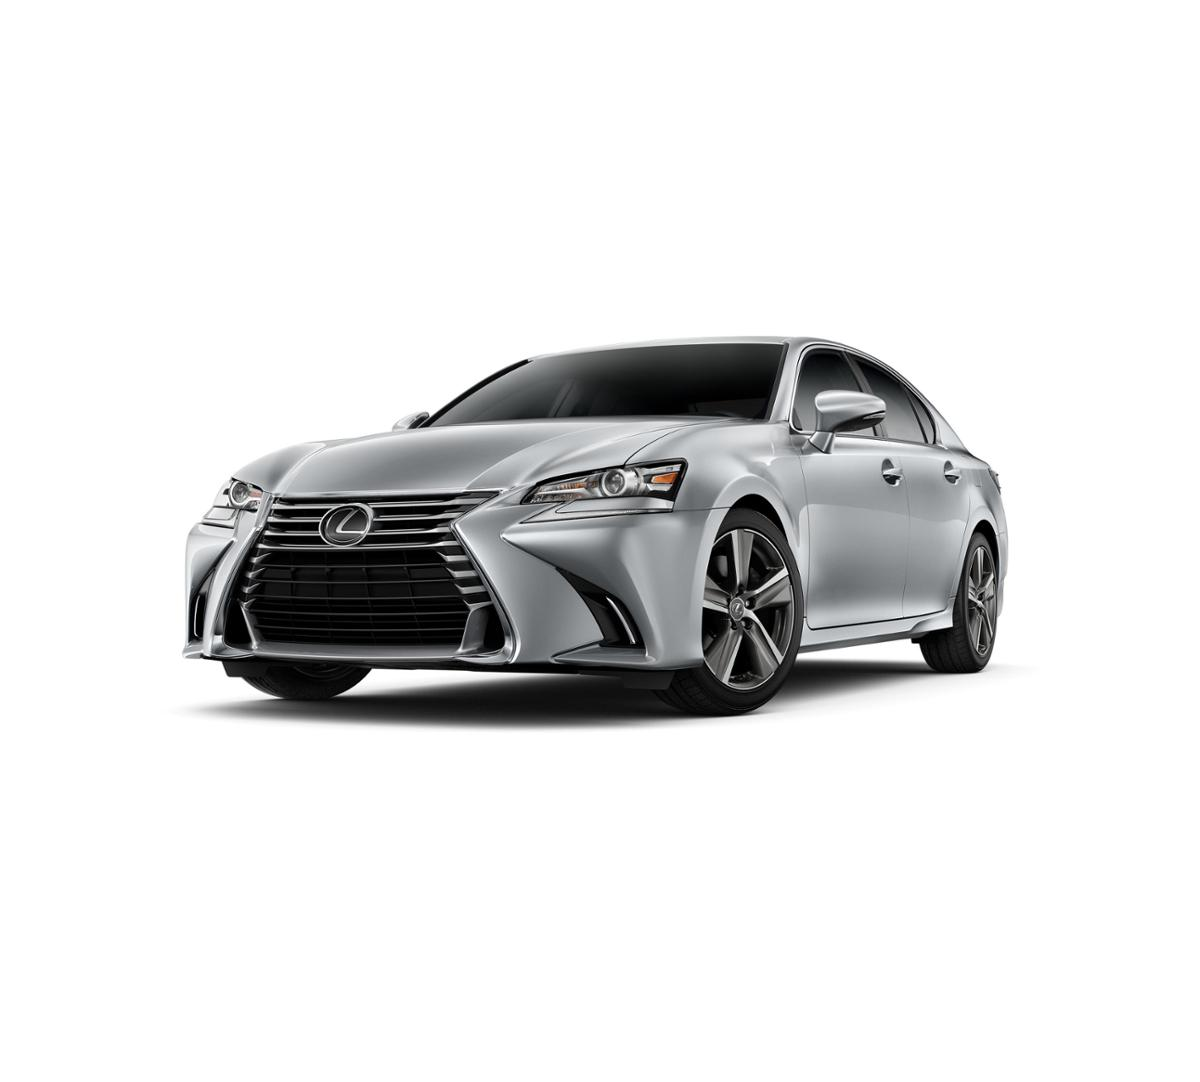 2018 Lexus GS 350 Vehicle Photo in Houston, TX 77546